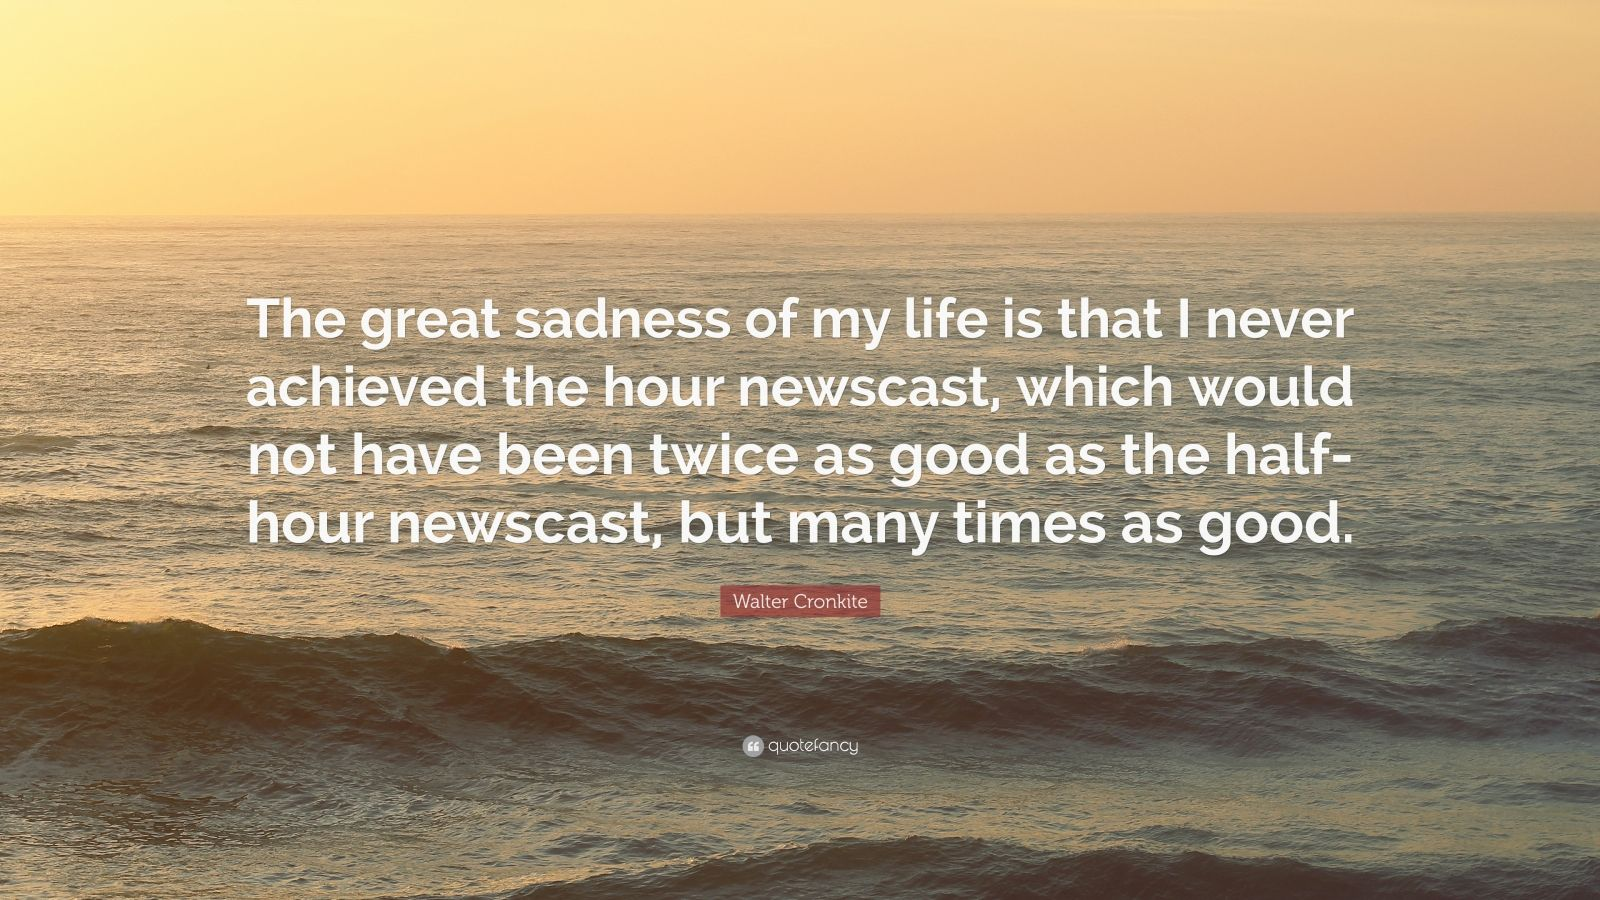 """Walter Cronkite Quote: """"The great sadness of my life is that I never achieved the hour newscast, which would not have been twice as good as the half-hour newscast, but many times as good."""""""